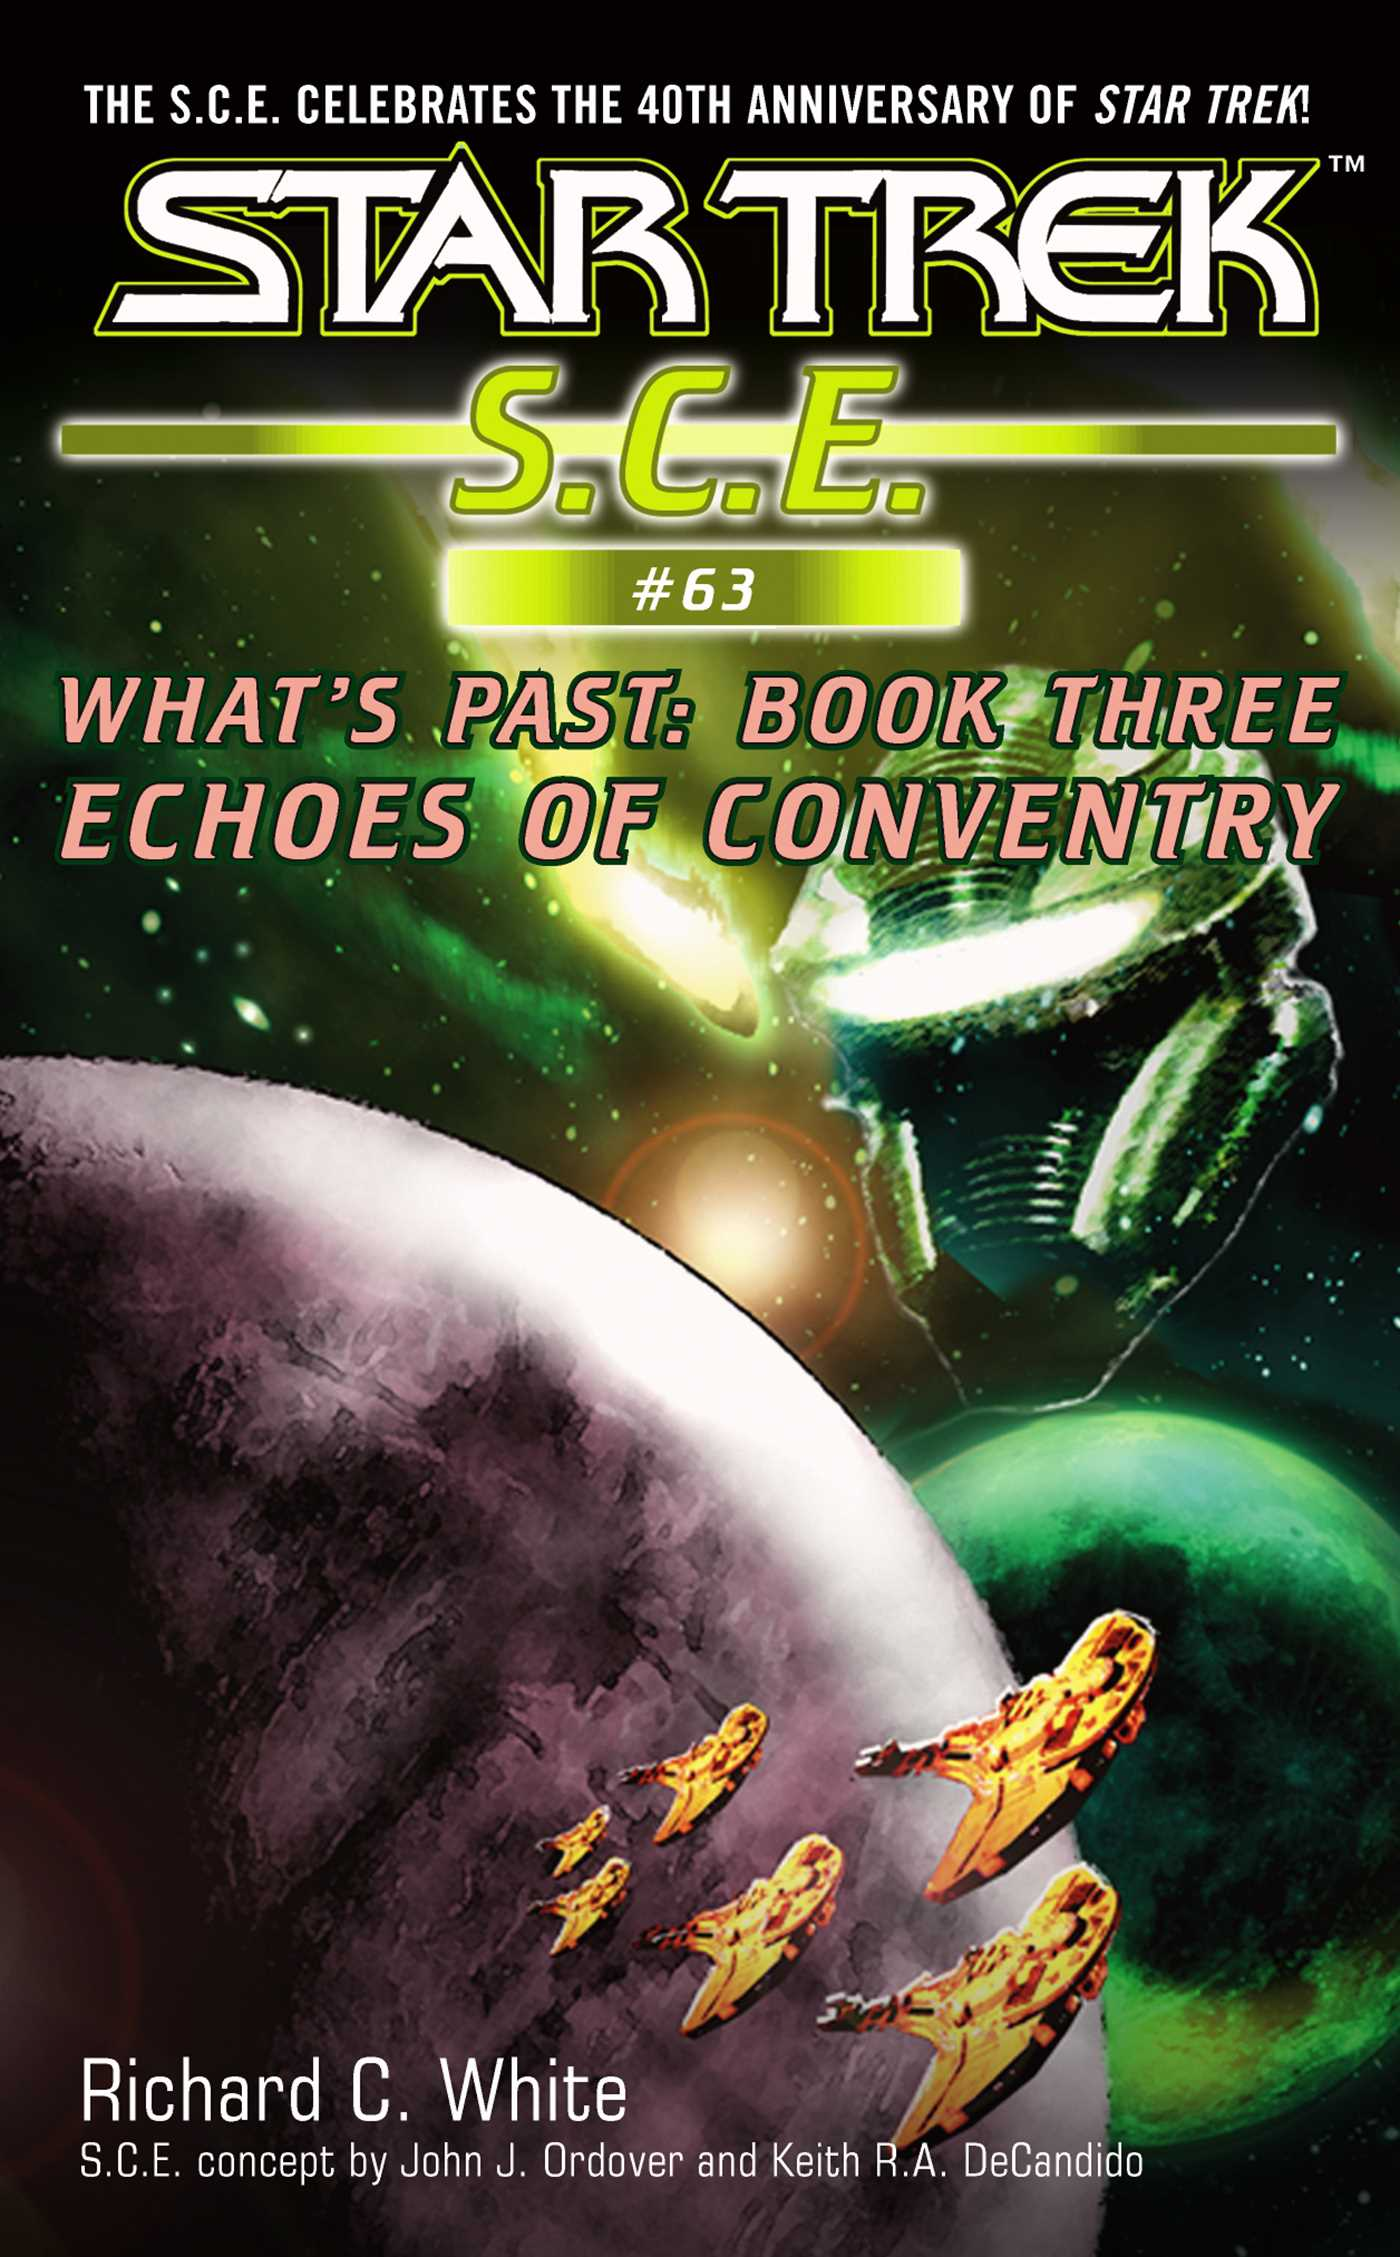 Star trek echoes of coventry 9781416520474 hr